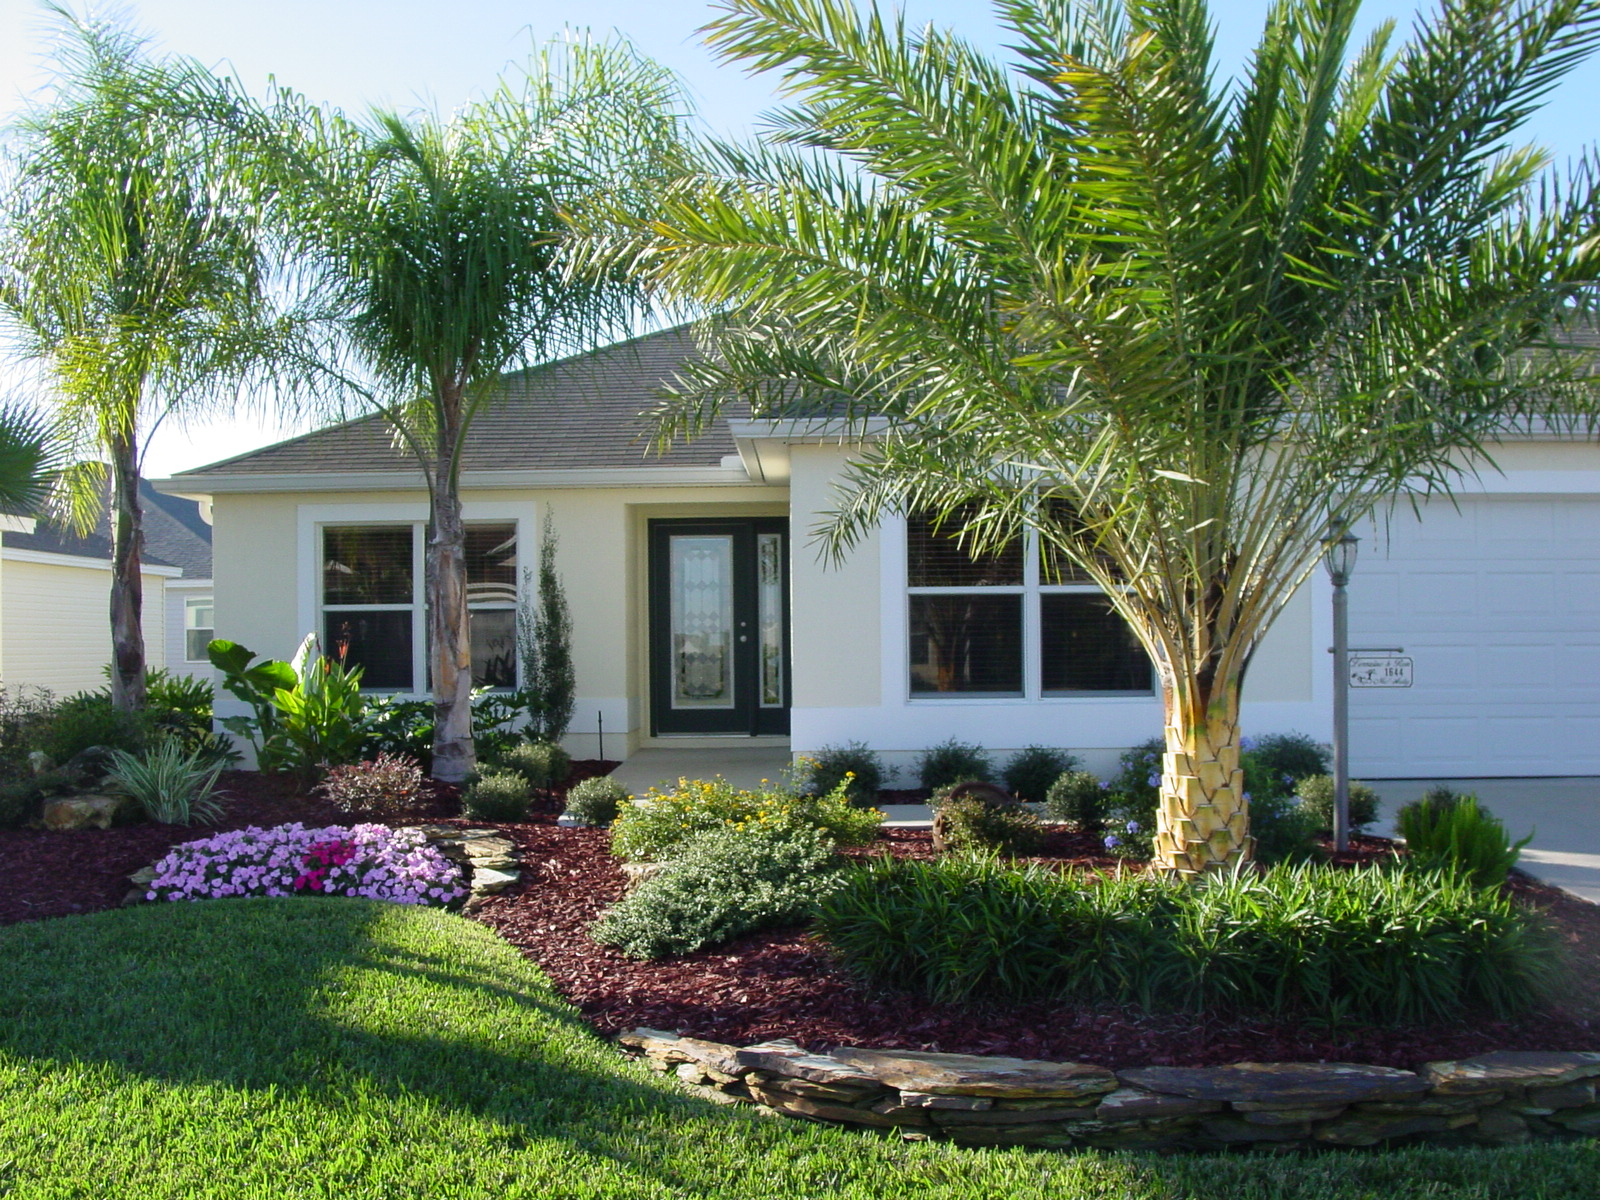 Remarkable South Florida Front Yard Landscaping Ideas 1600 x 1200 · 873 kB · jpeg